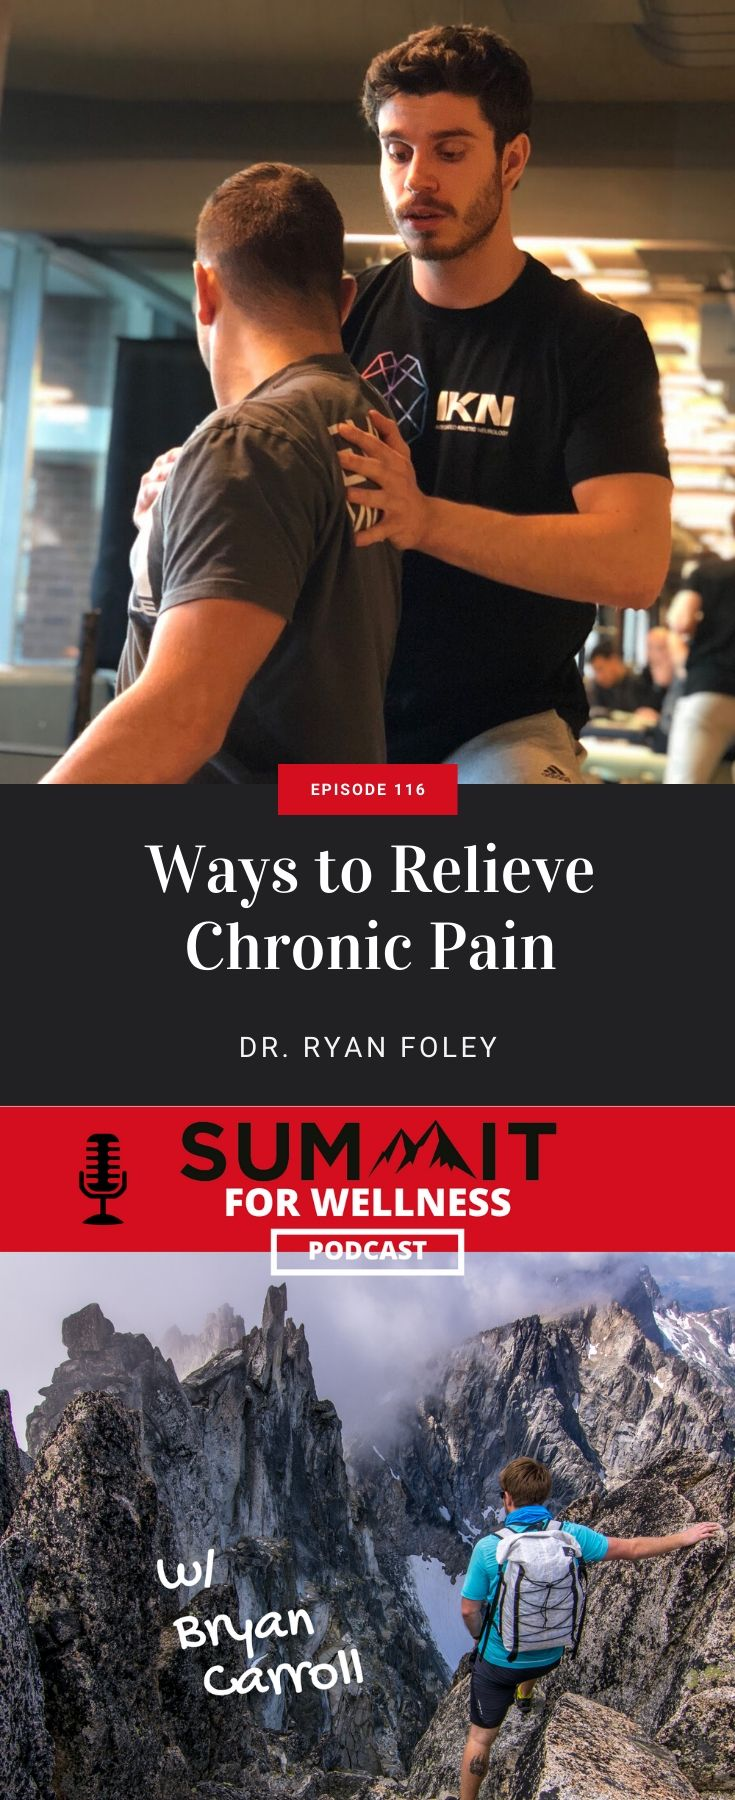 Ryan Foley teaches how to reduce chronic pain